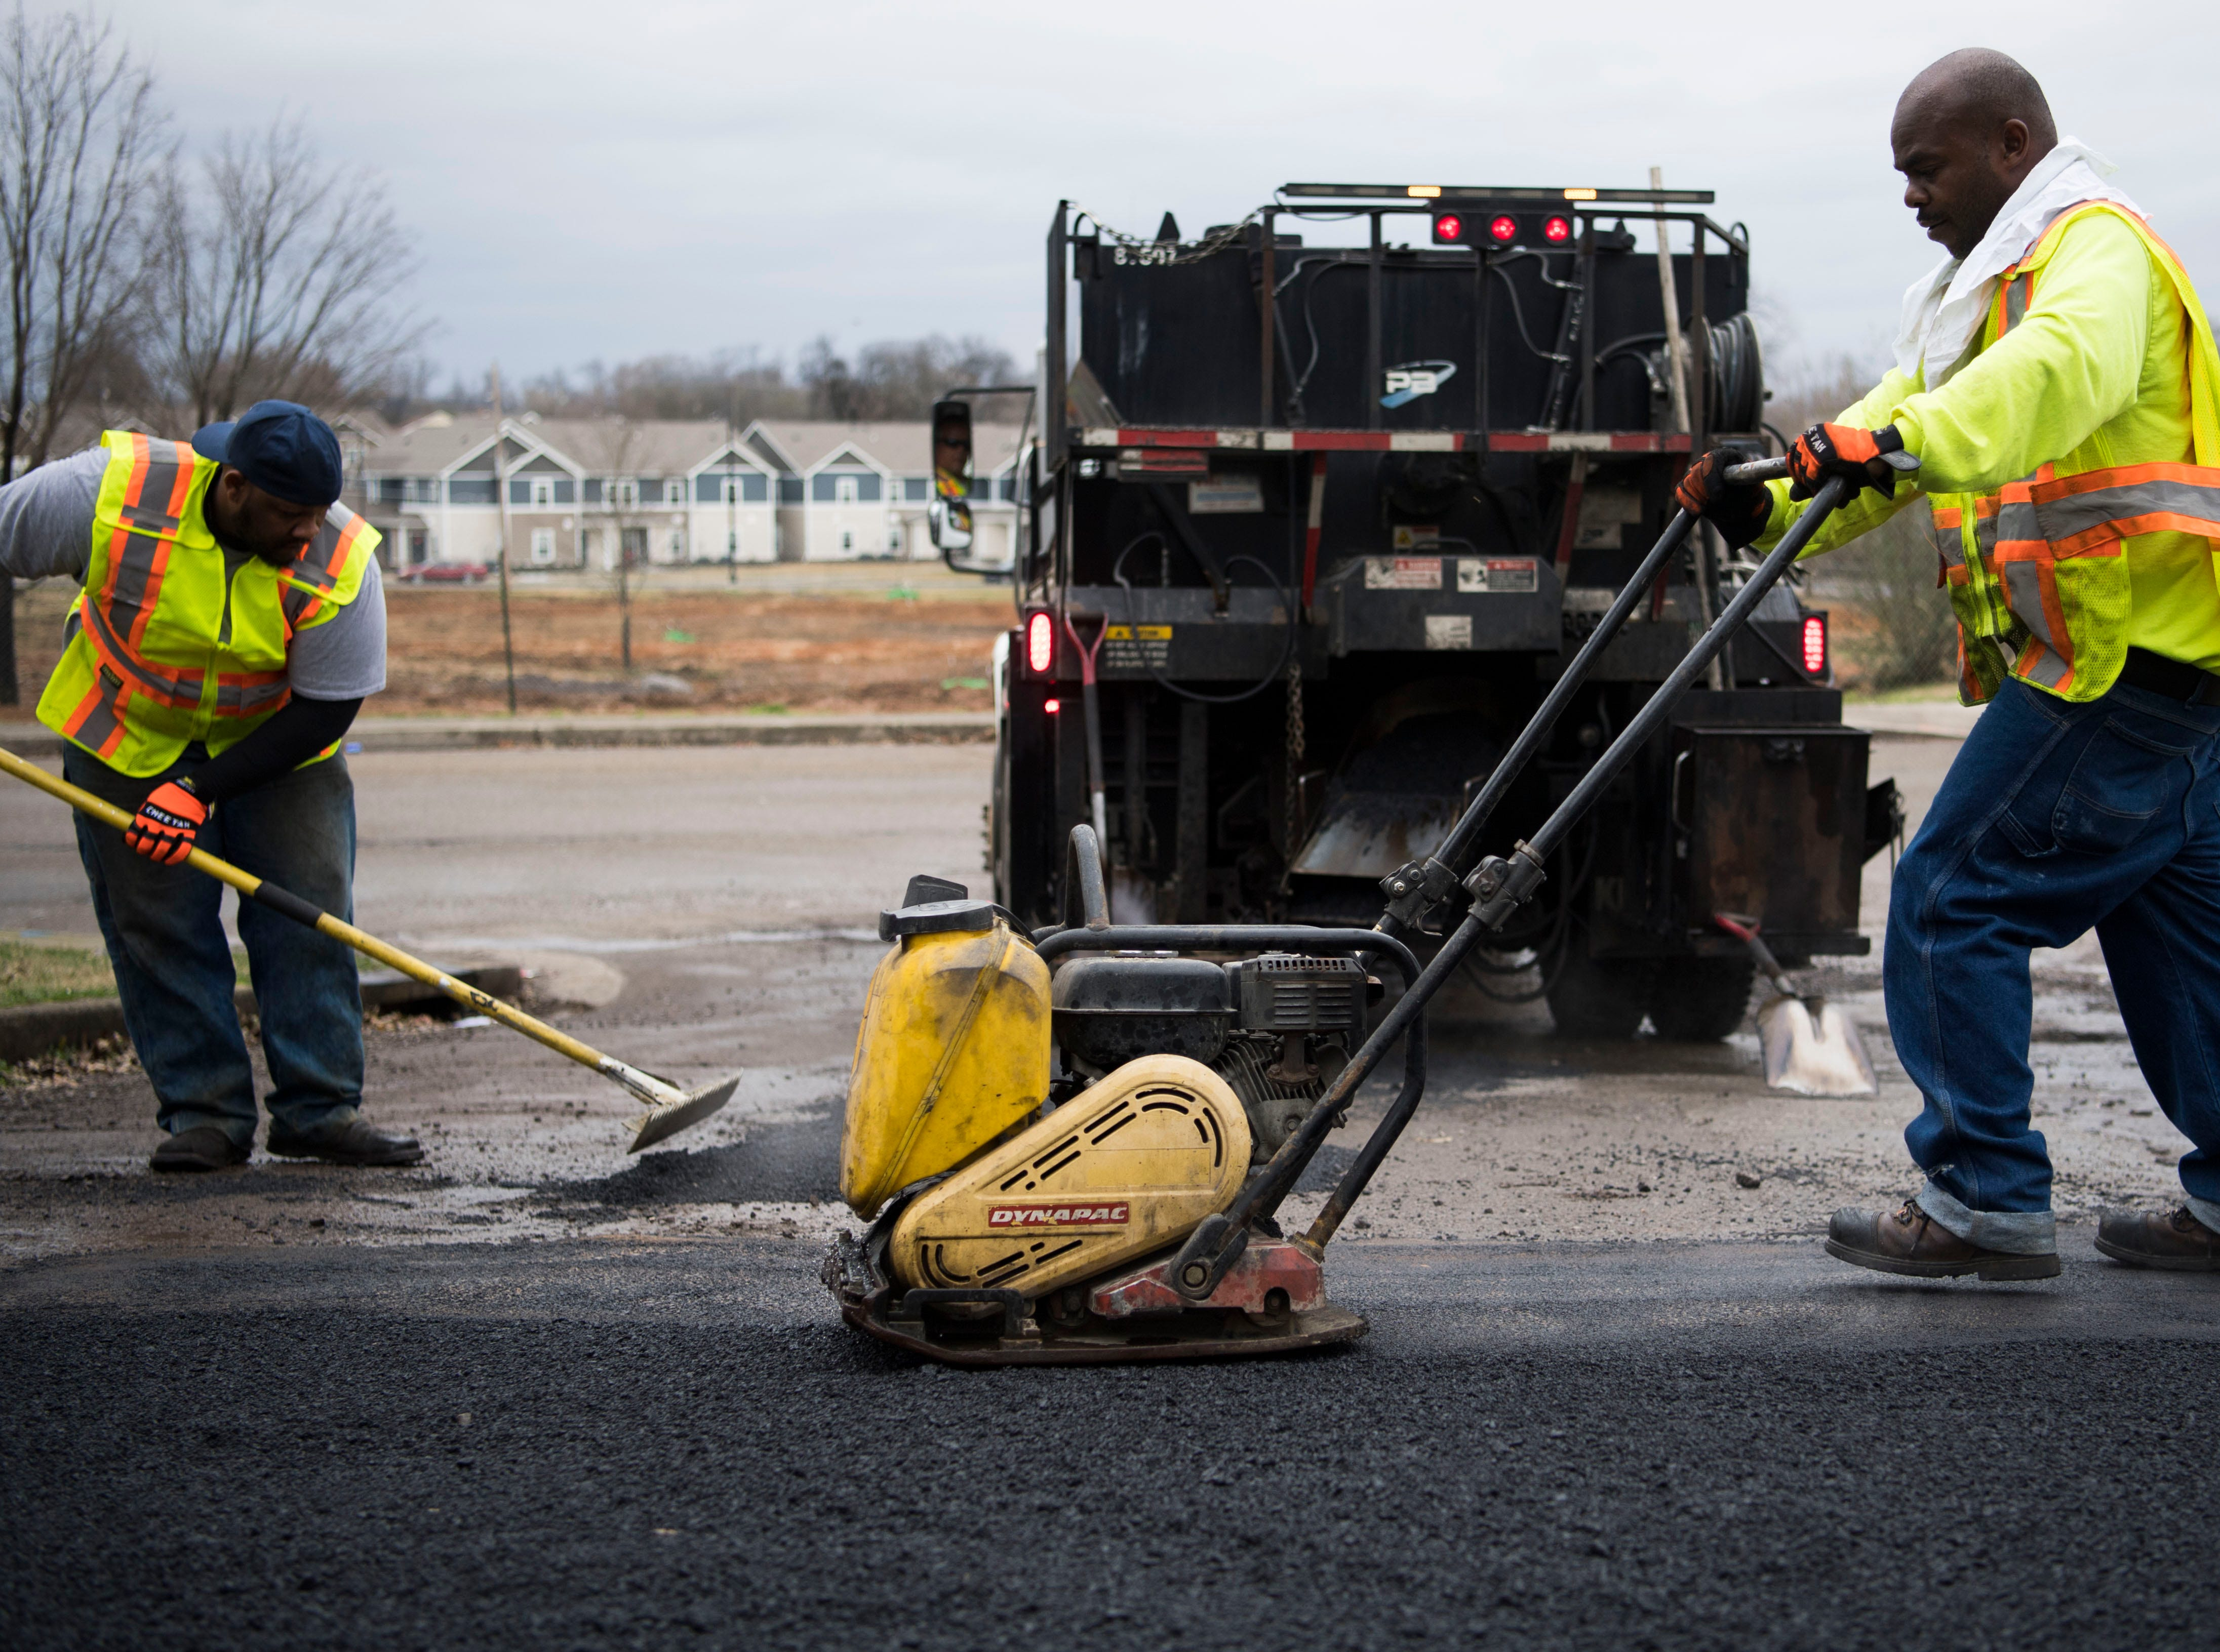 At right Anthony Johnson tamps asphalt as potholes are filled by a City of Knoxville crew on Sanders Lane in East Knoxville, Thursday, Feb. 7, 2018